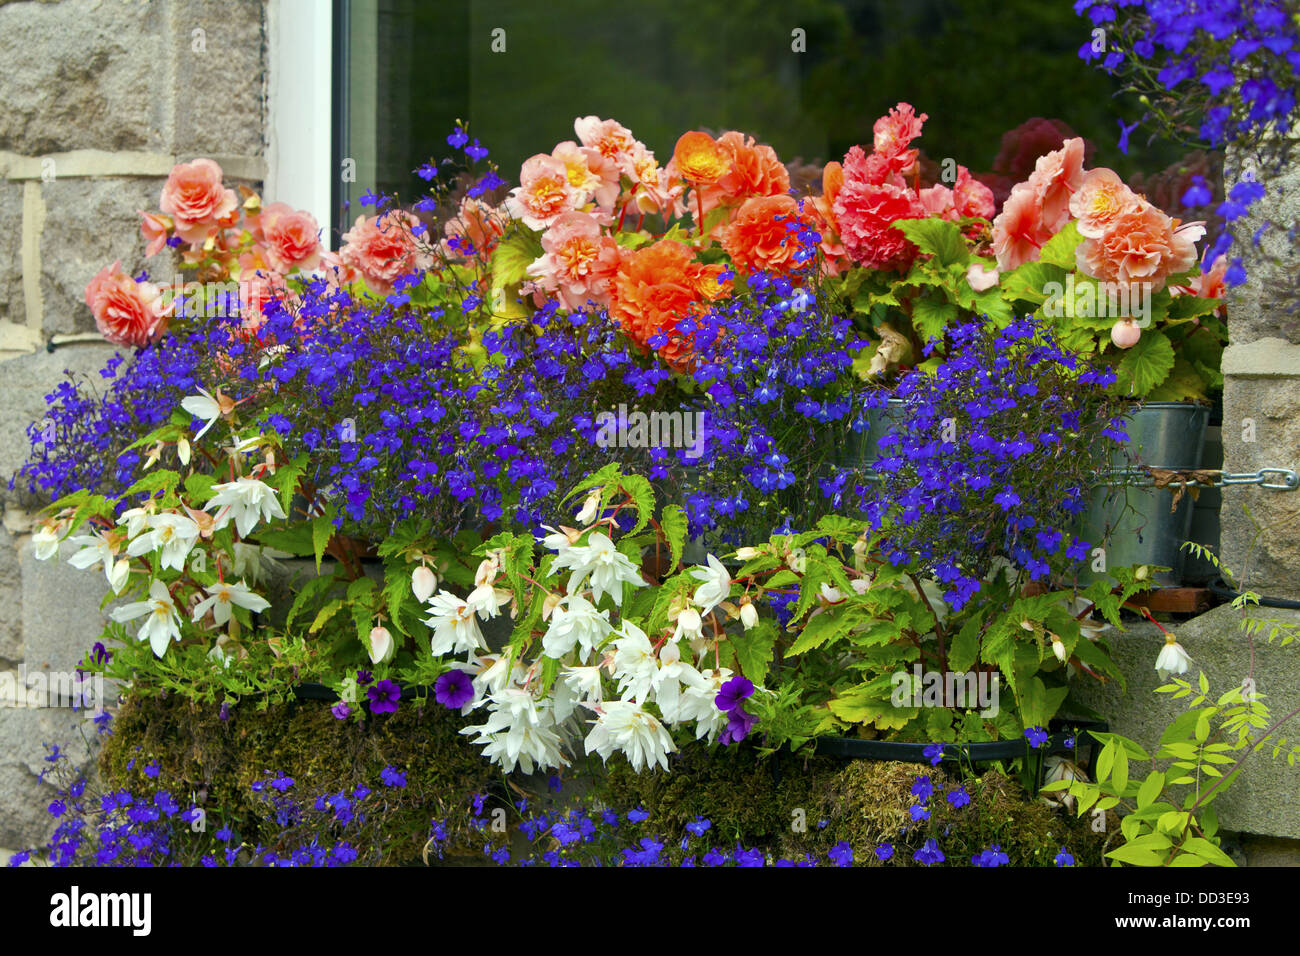 Pink Blue And White Trailing Flowers In A Window Box Of An Old